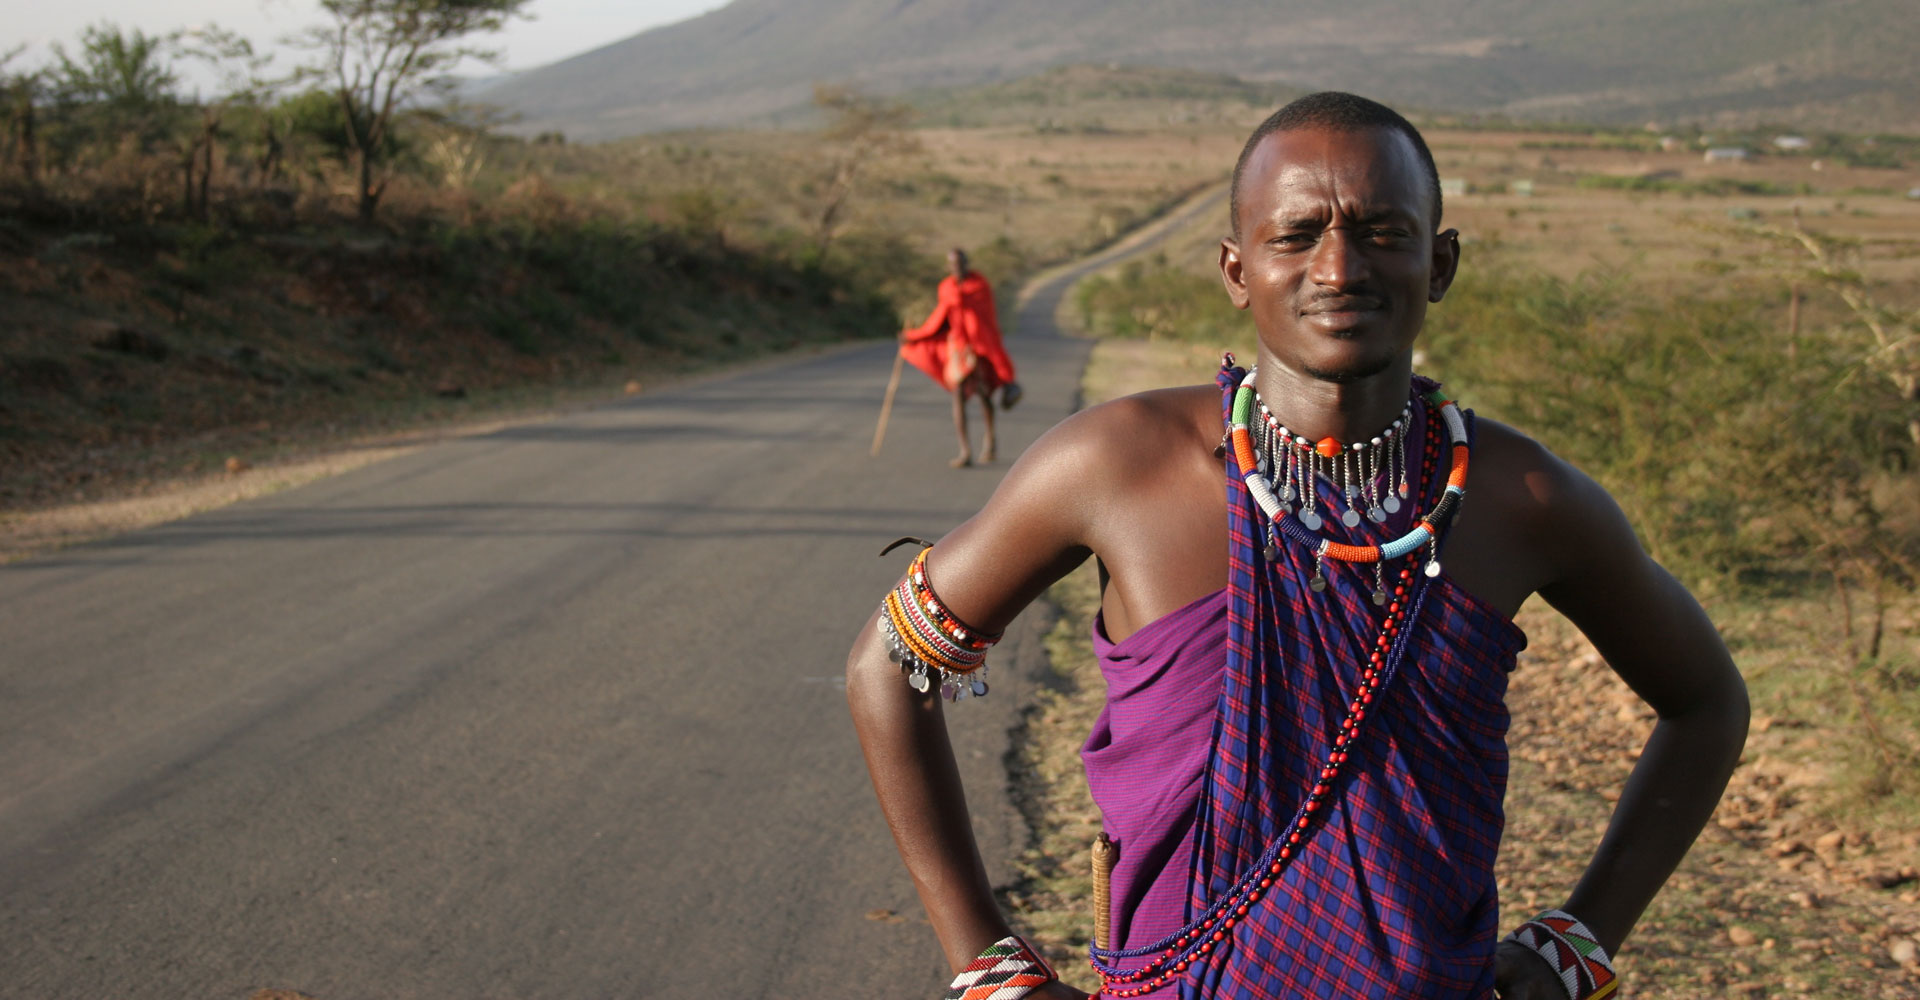 Indigenous peoples in Kenya